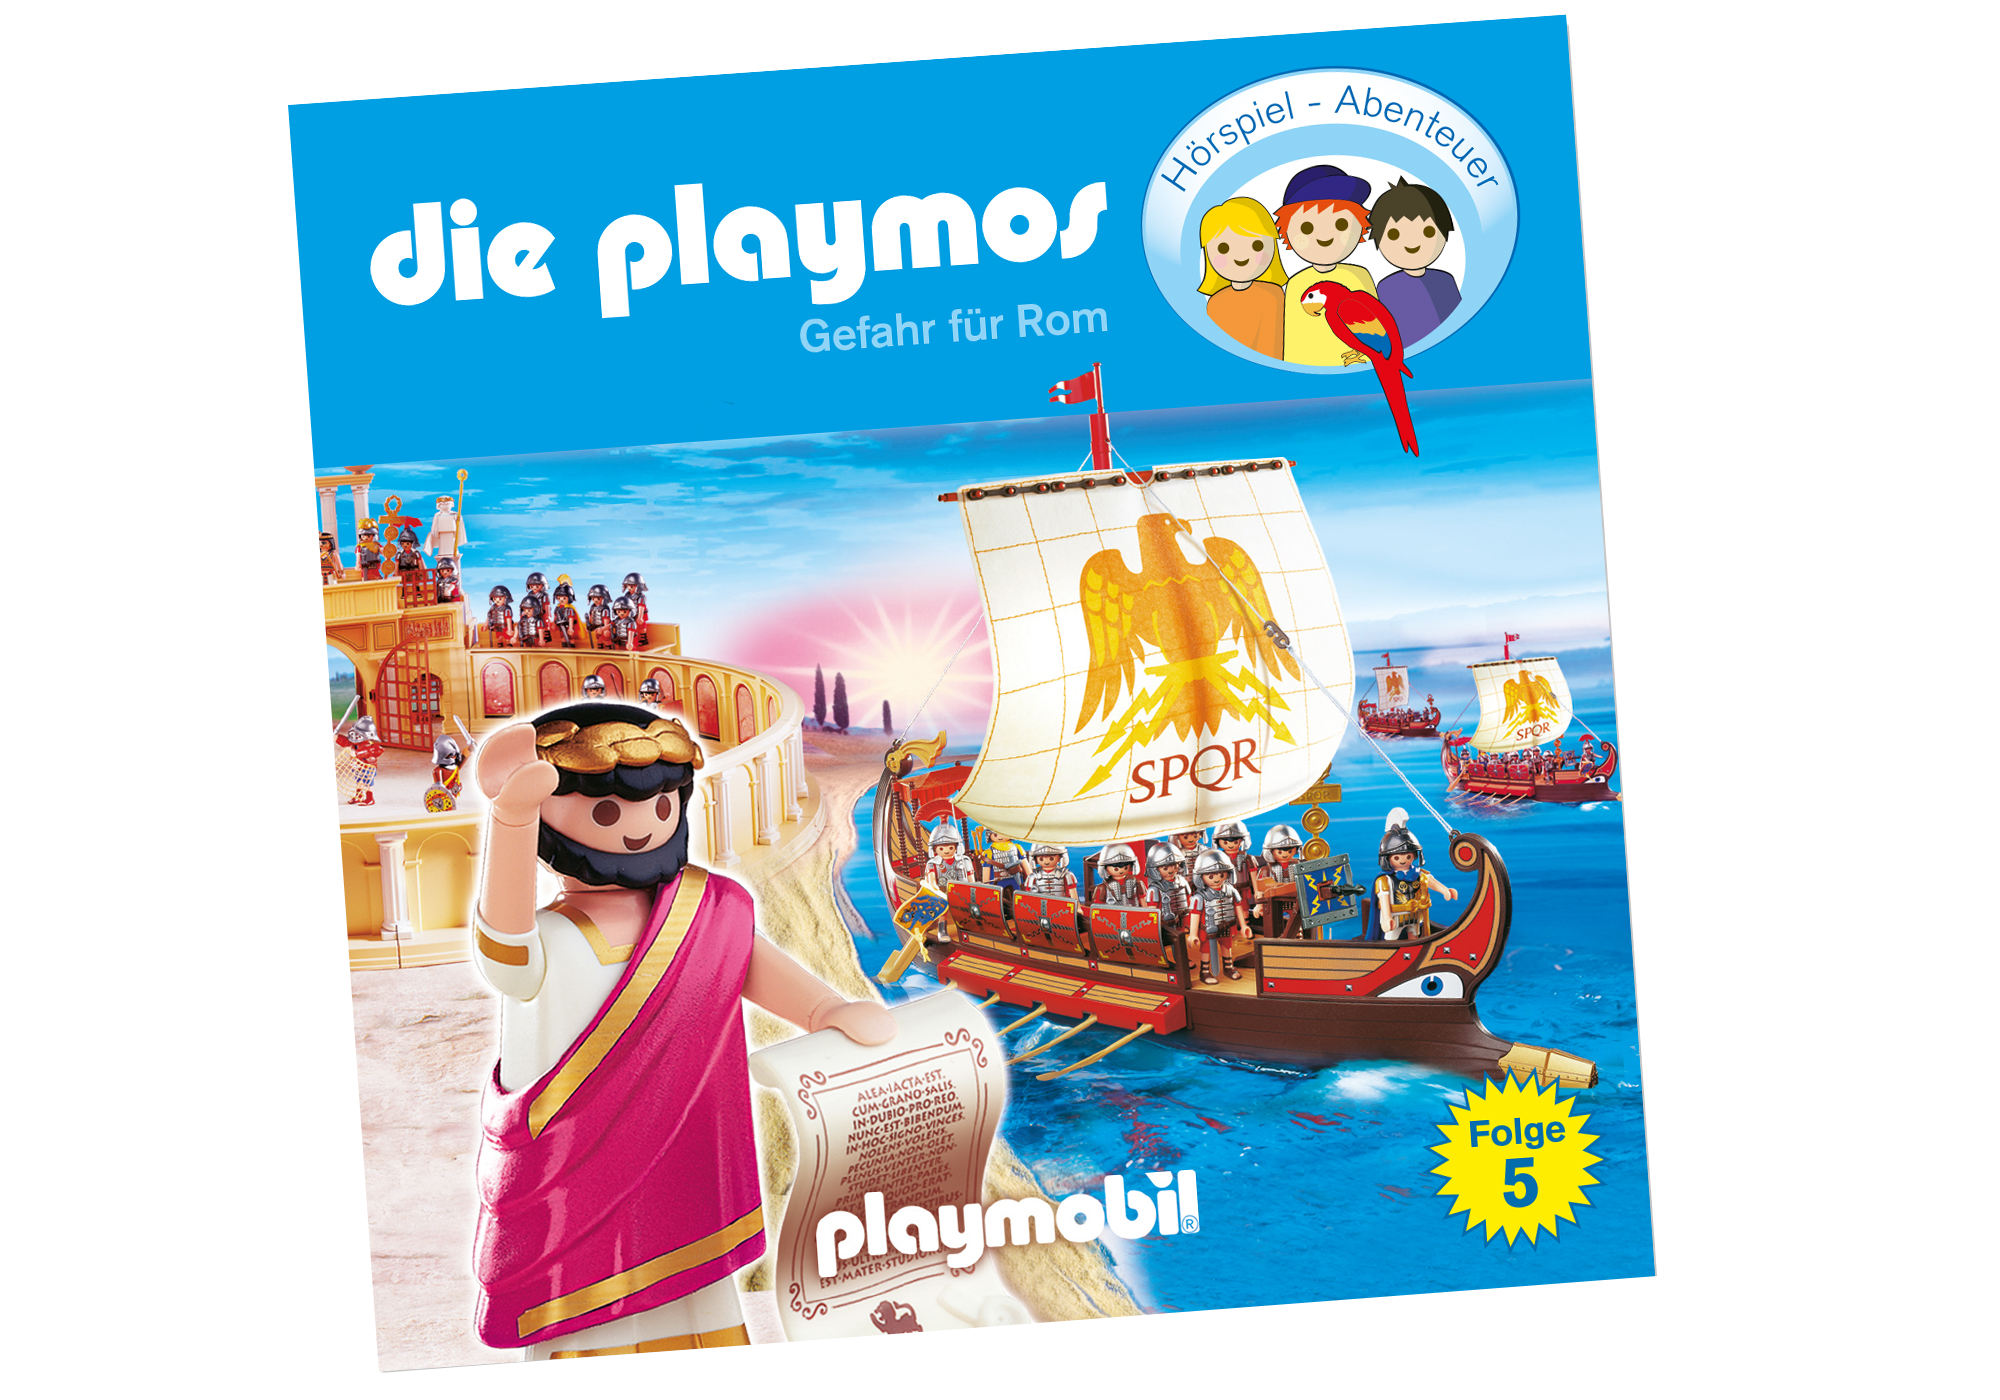 http://media.playmobil.com/i/playmobil/80157_product_detail